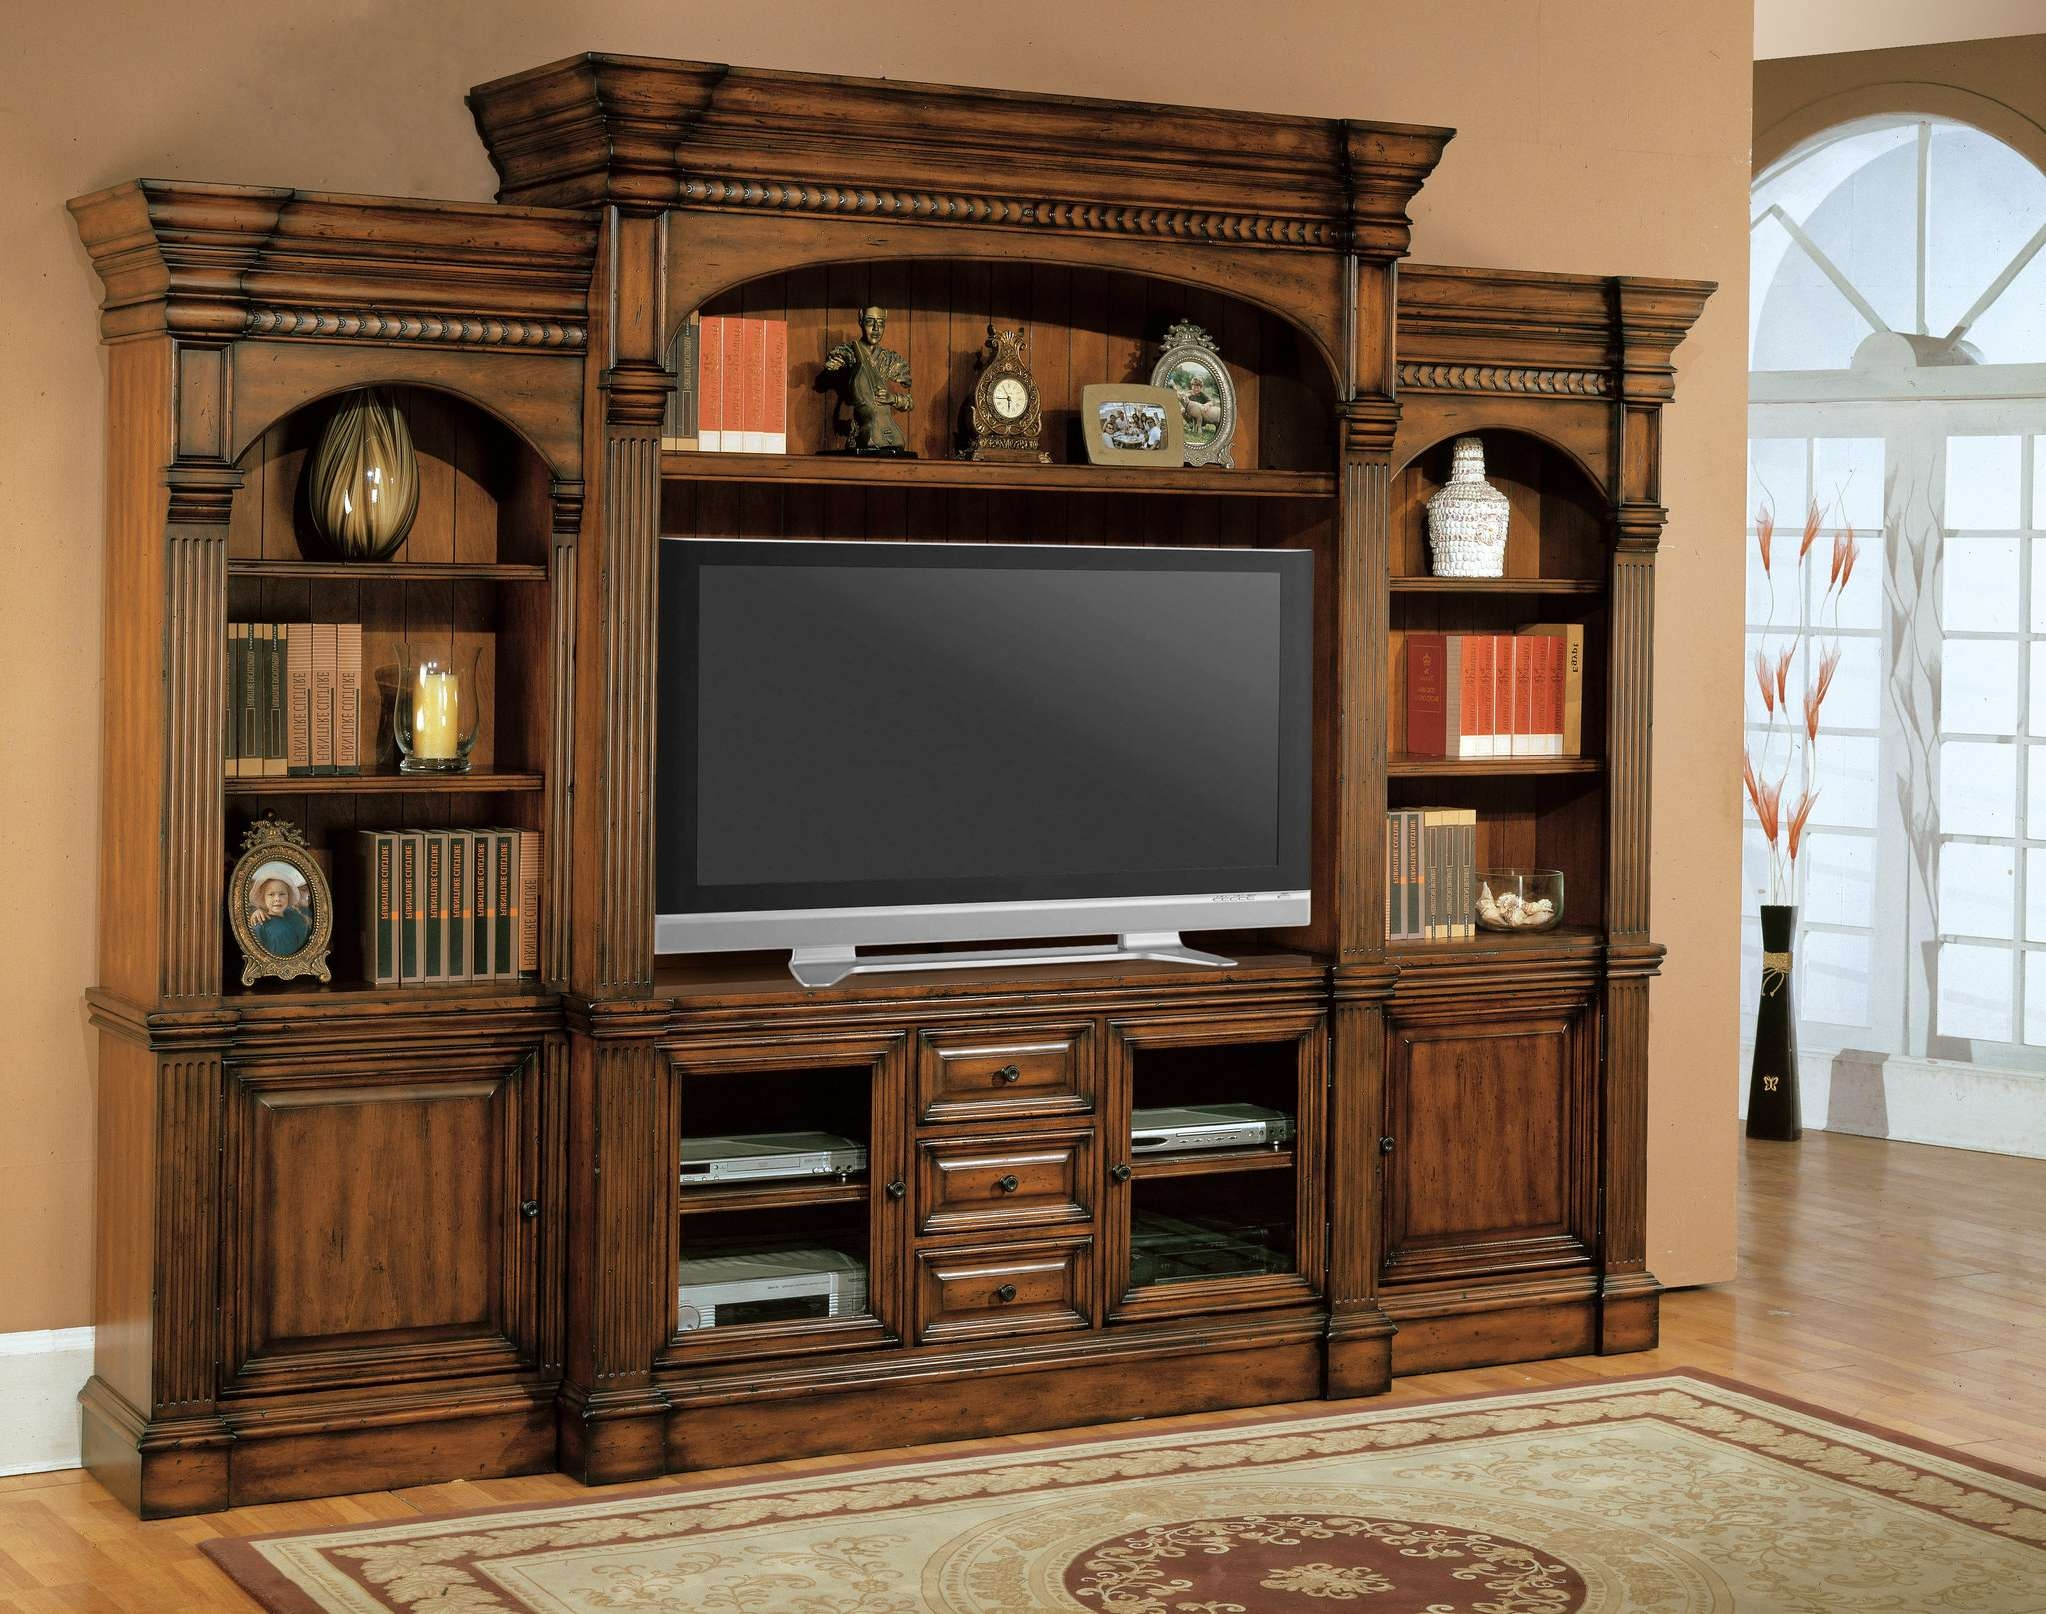 Valuable Idea Flat Screen Tv Wall Cabinet Modest Design Wall With Regard To Wall Mounted Tv Cabinets For Flat Screens With Doors (Gallery 18 of 20)